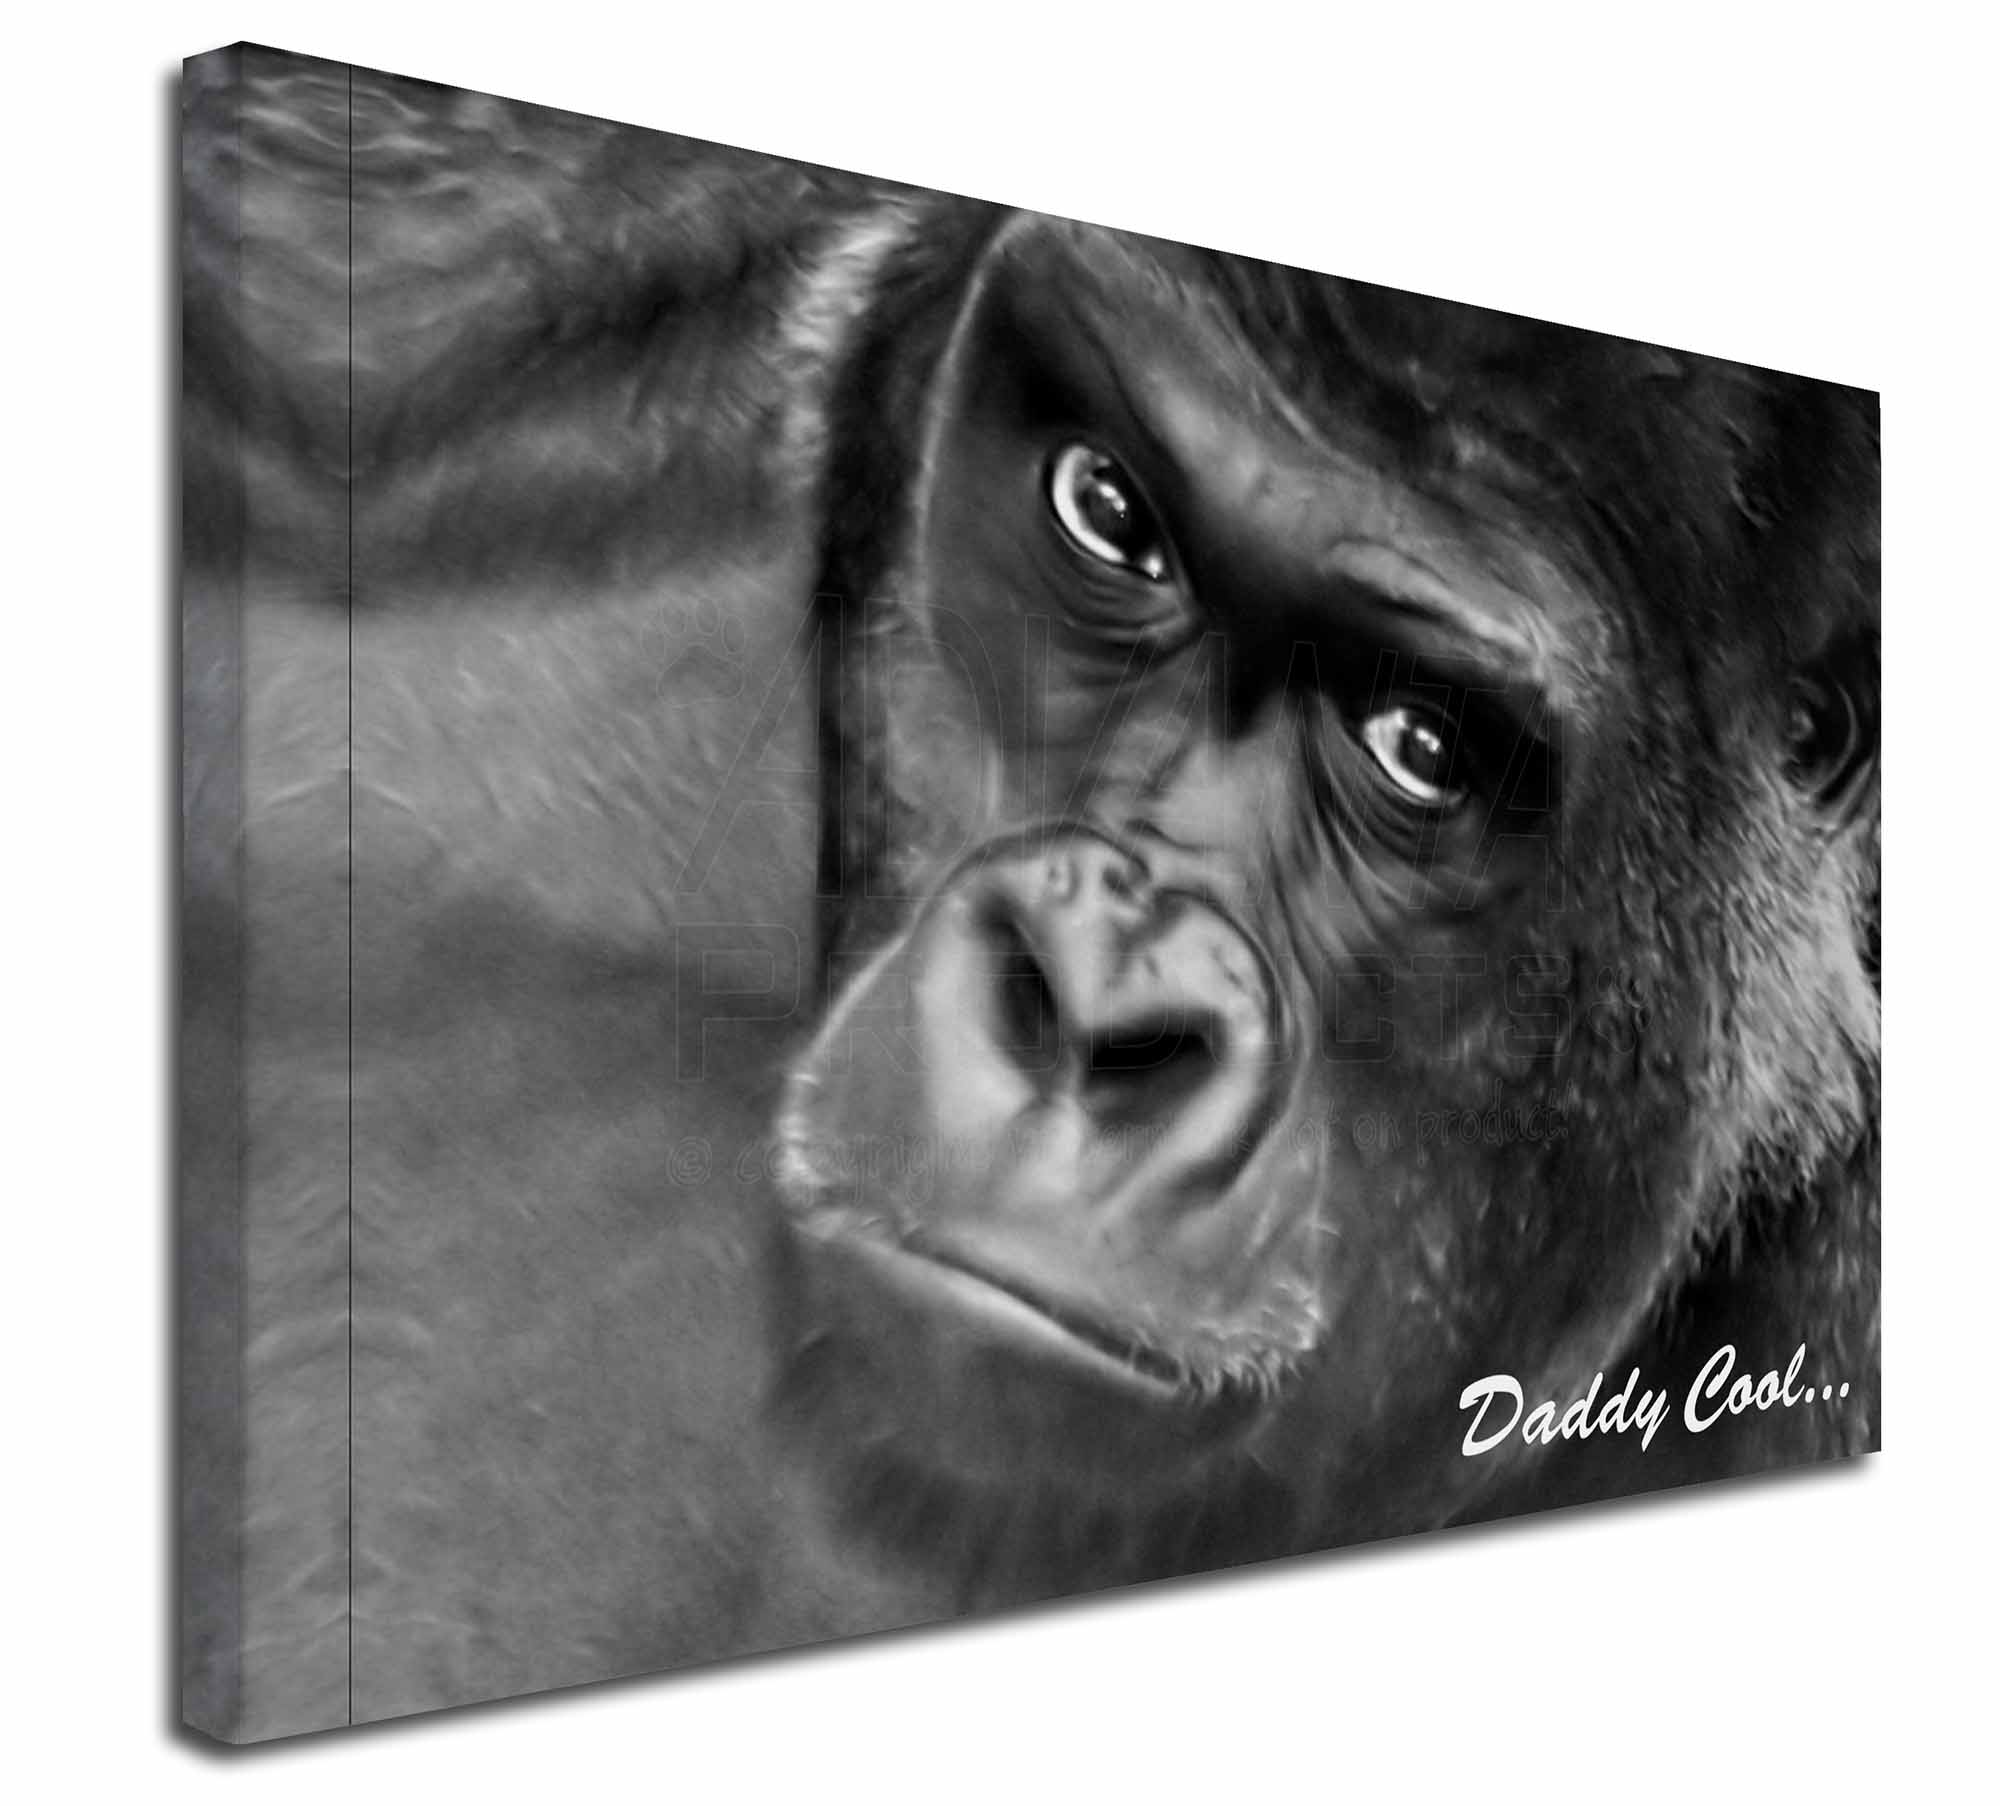 AM-13M Gorilla /'Daddy Cool/' Fathers Day Dad Gift Computer Mouse Mat Christmas G